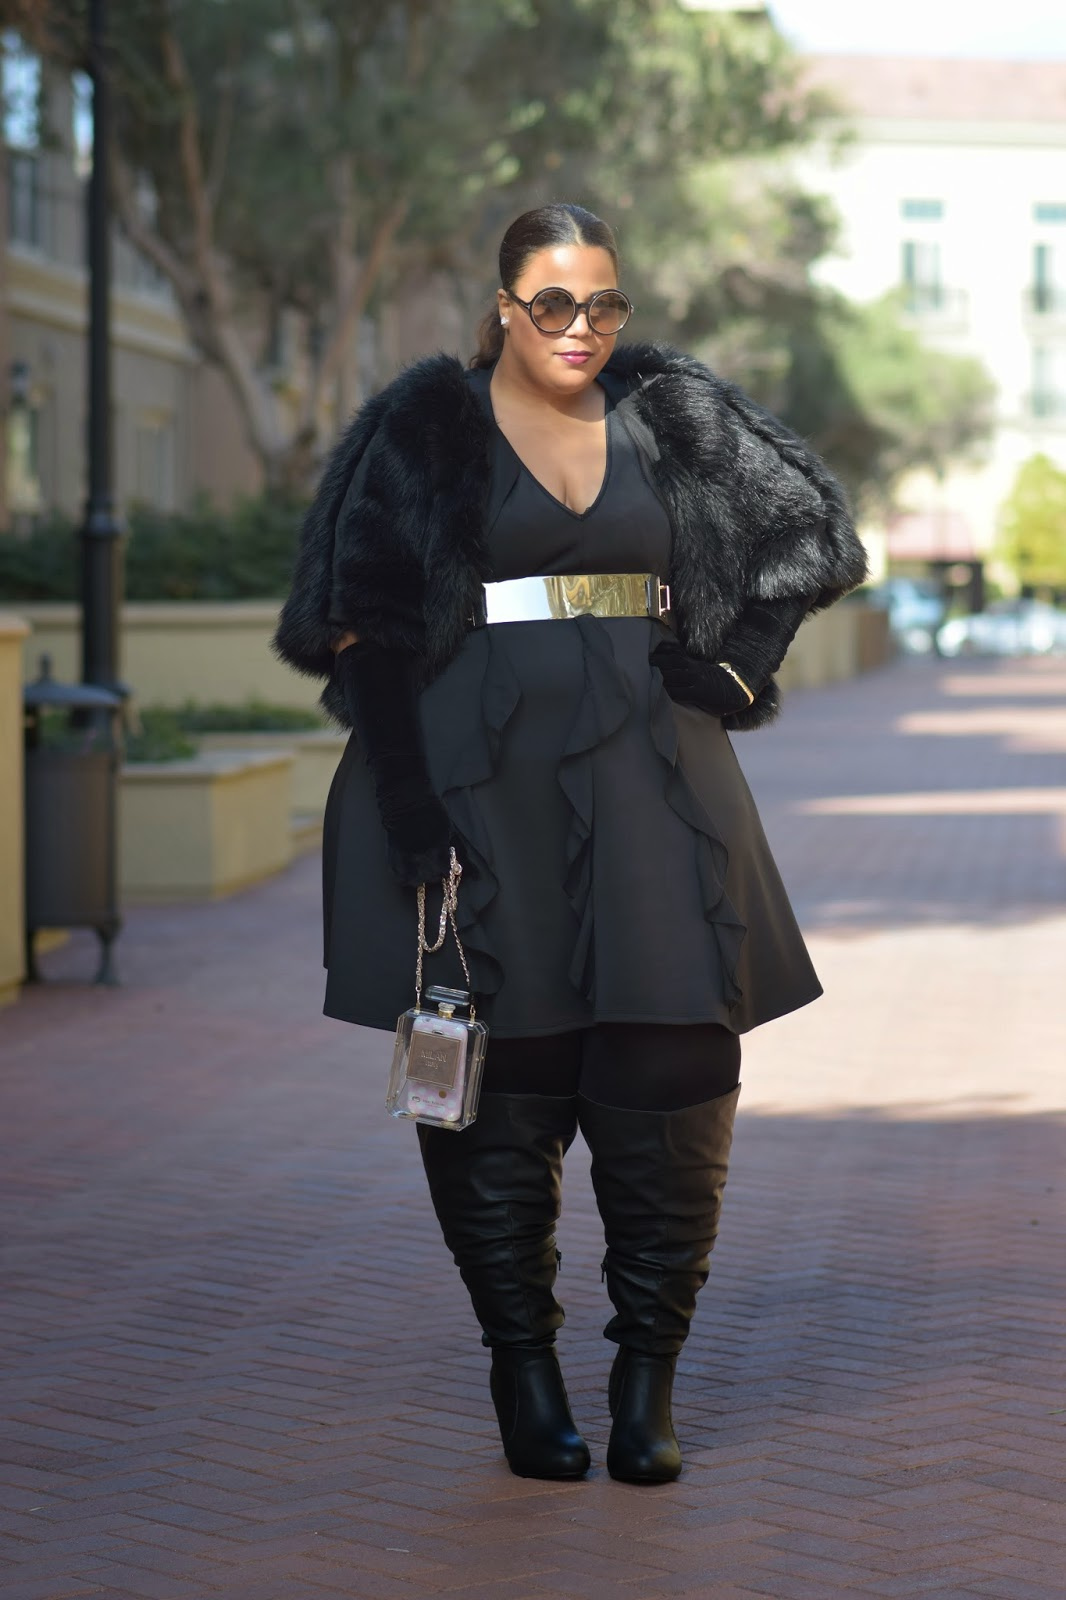 GarnerStyle | The Curvy Girl Guide: Big Knees Please